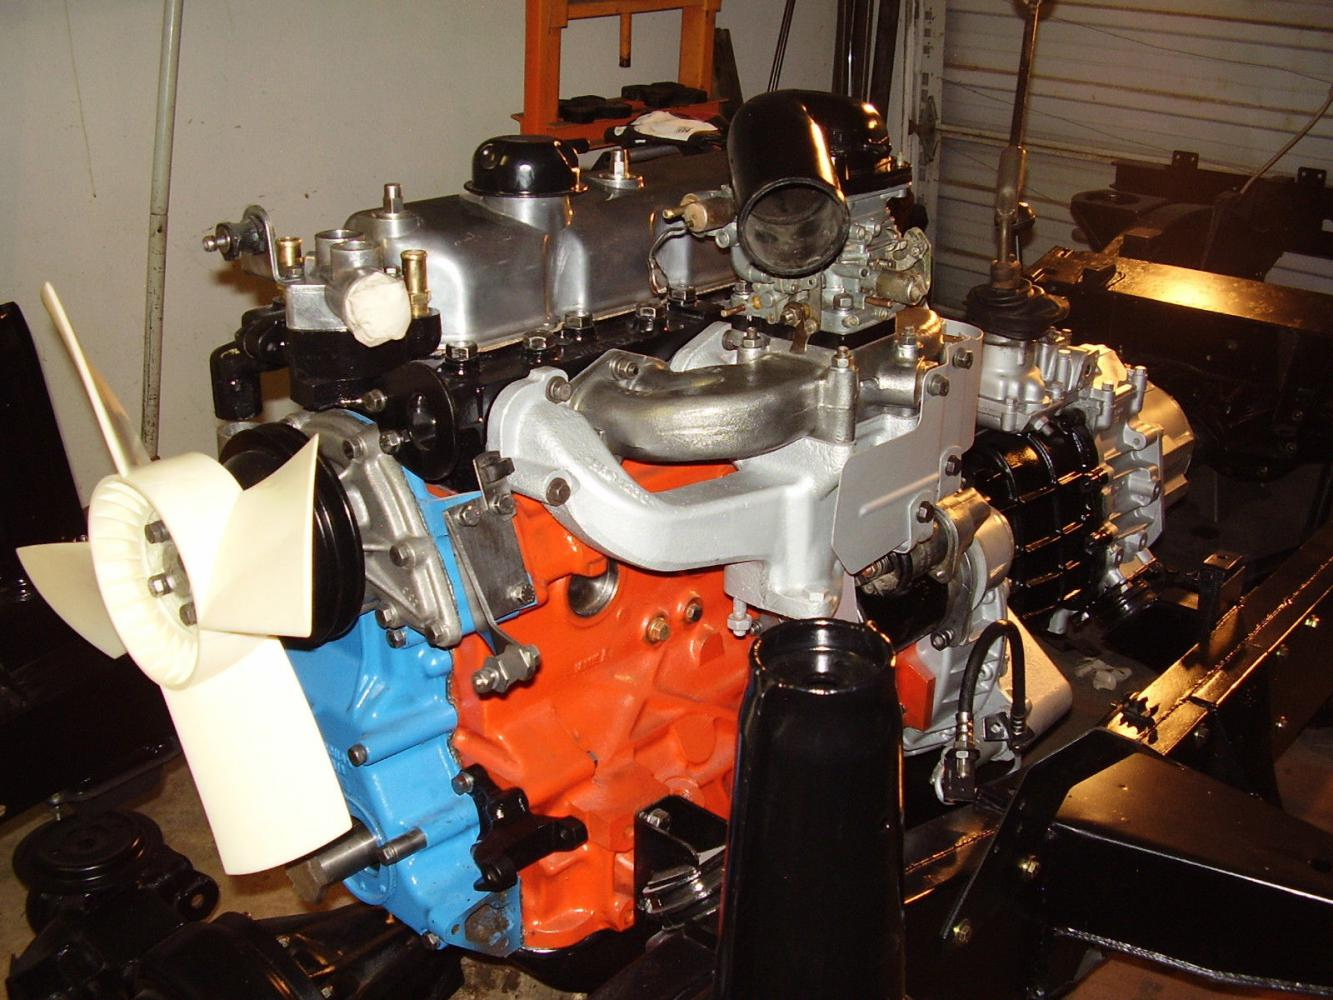 Click image for larger version  Name:s-l1600 engine.jpg Views:300 Size:174.8 KB ID:271882